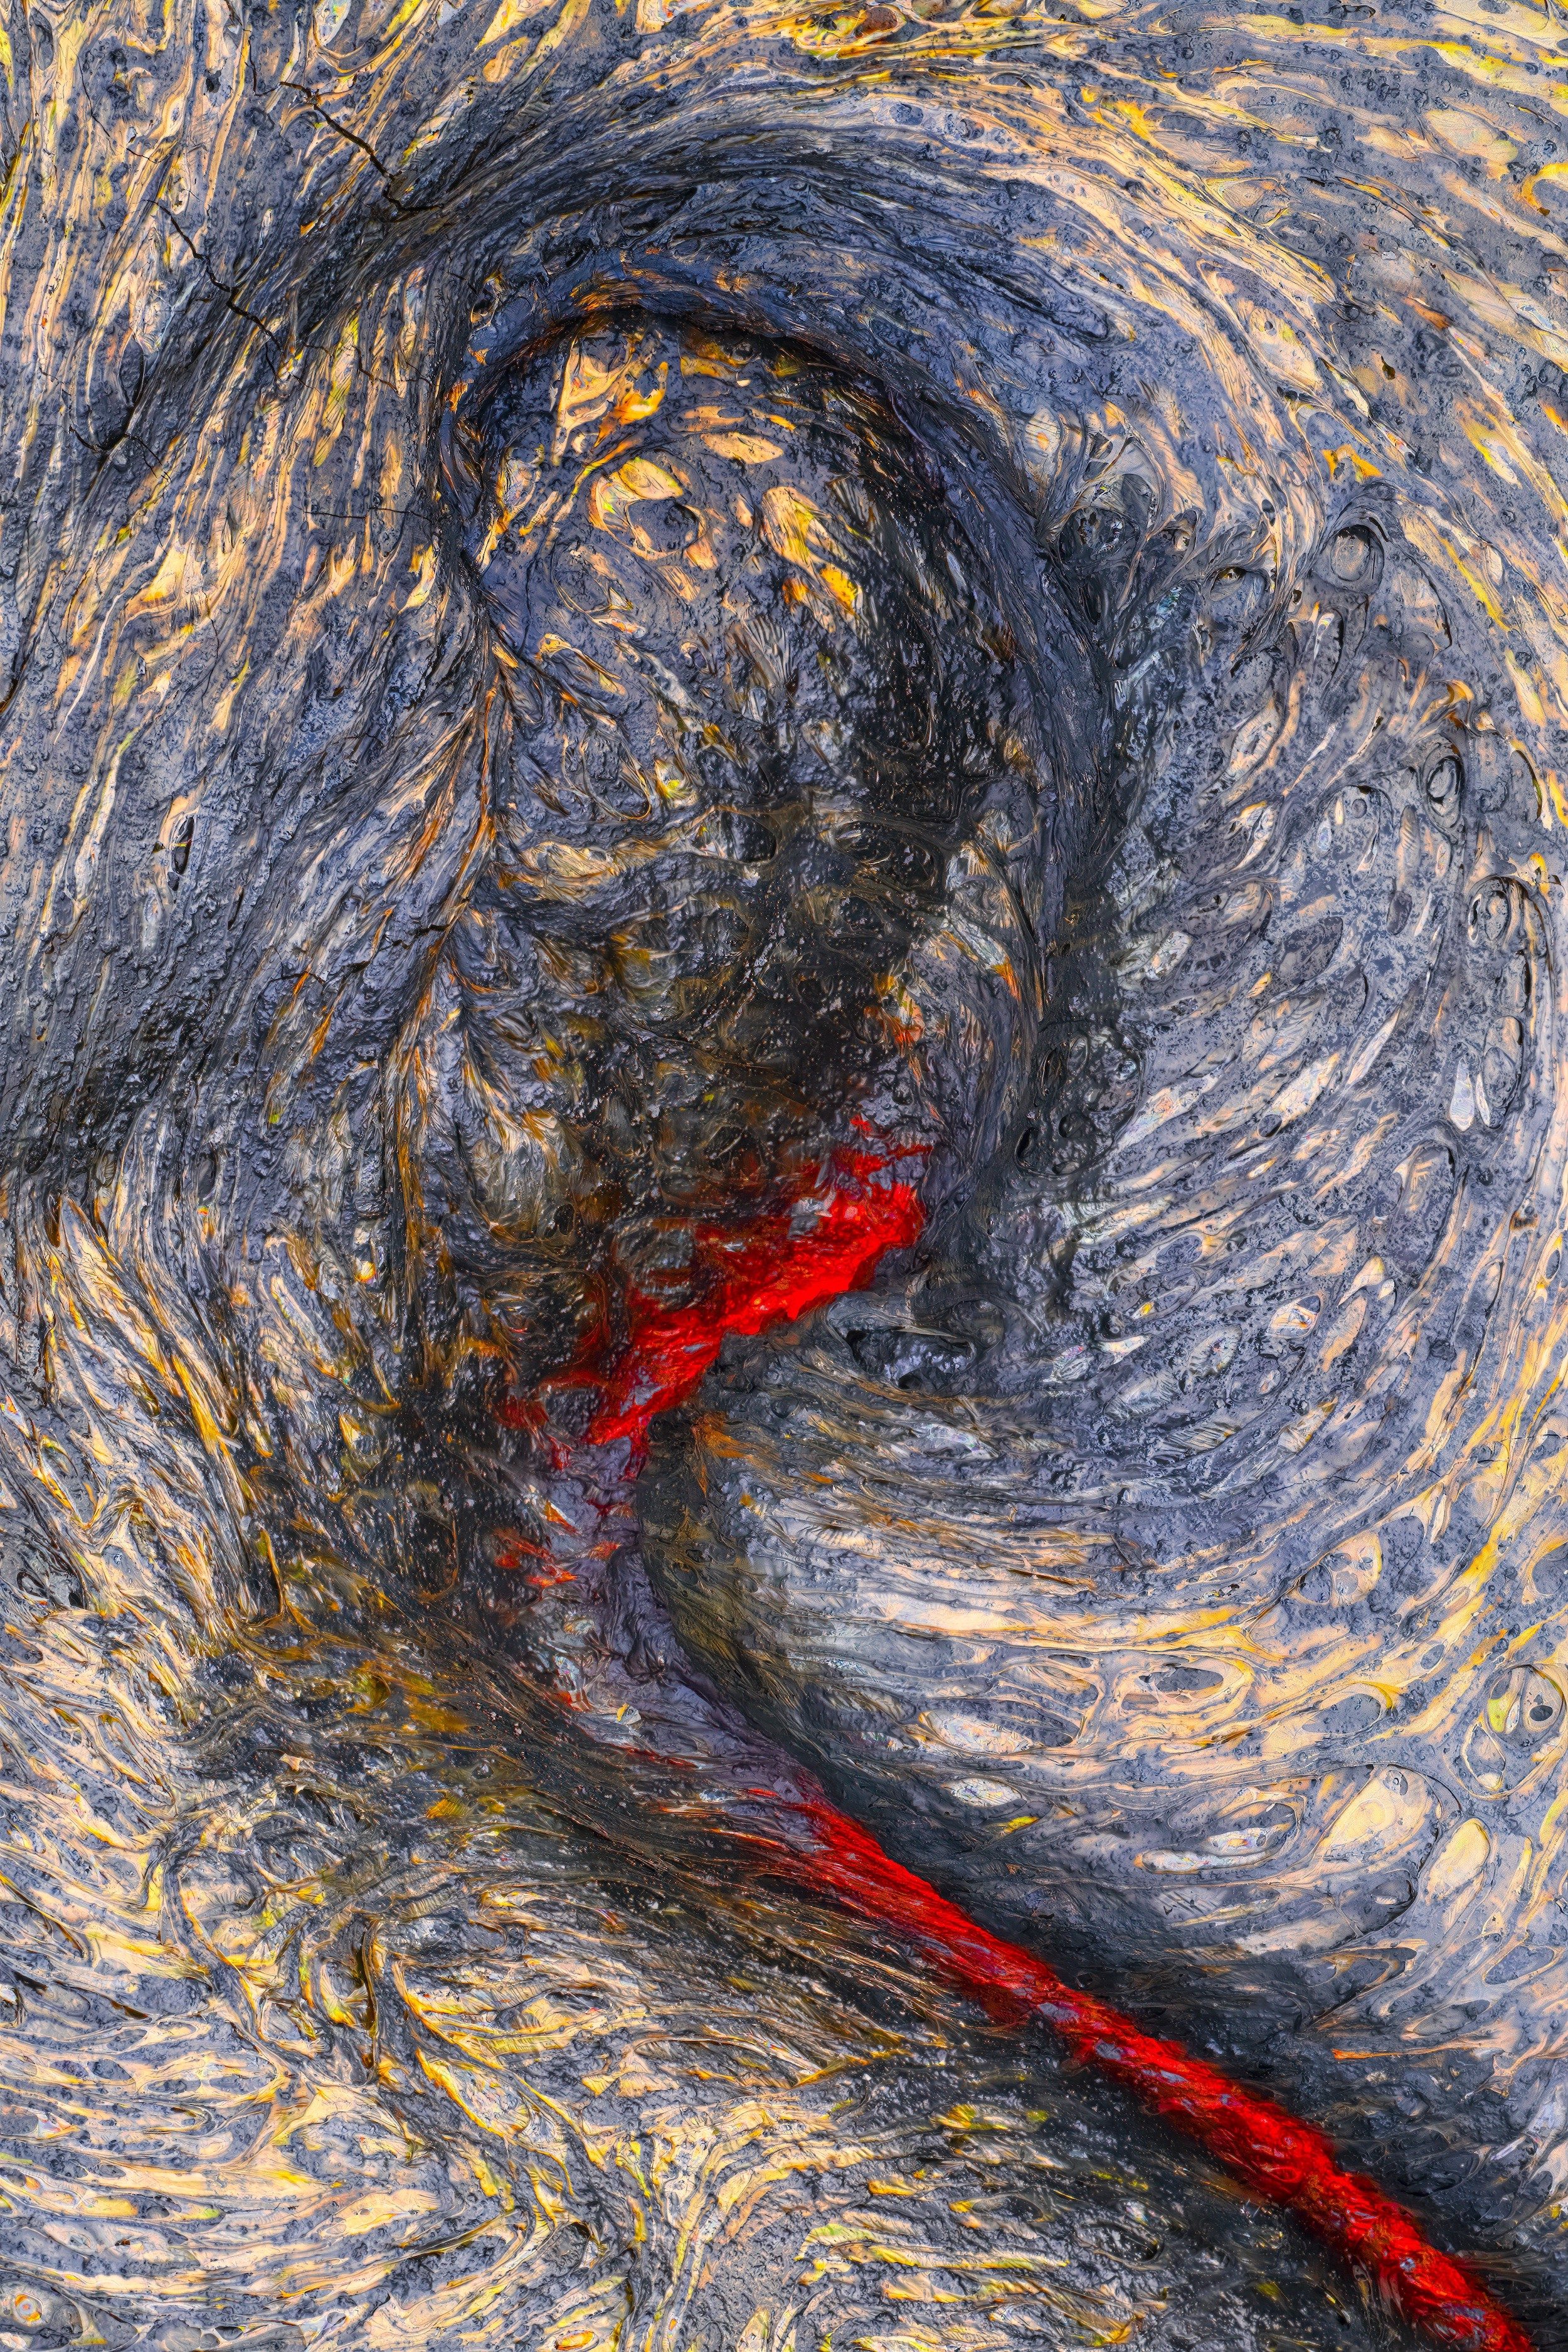 A photo of melting lava shows a yellow and black ground with glowing red lava shown in a wiggling line, glowing below